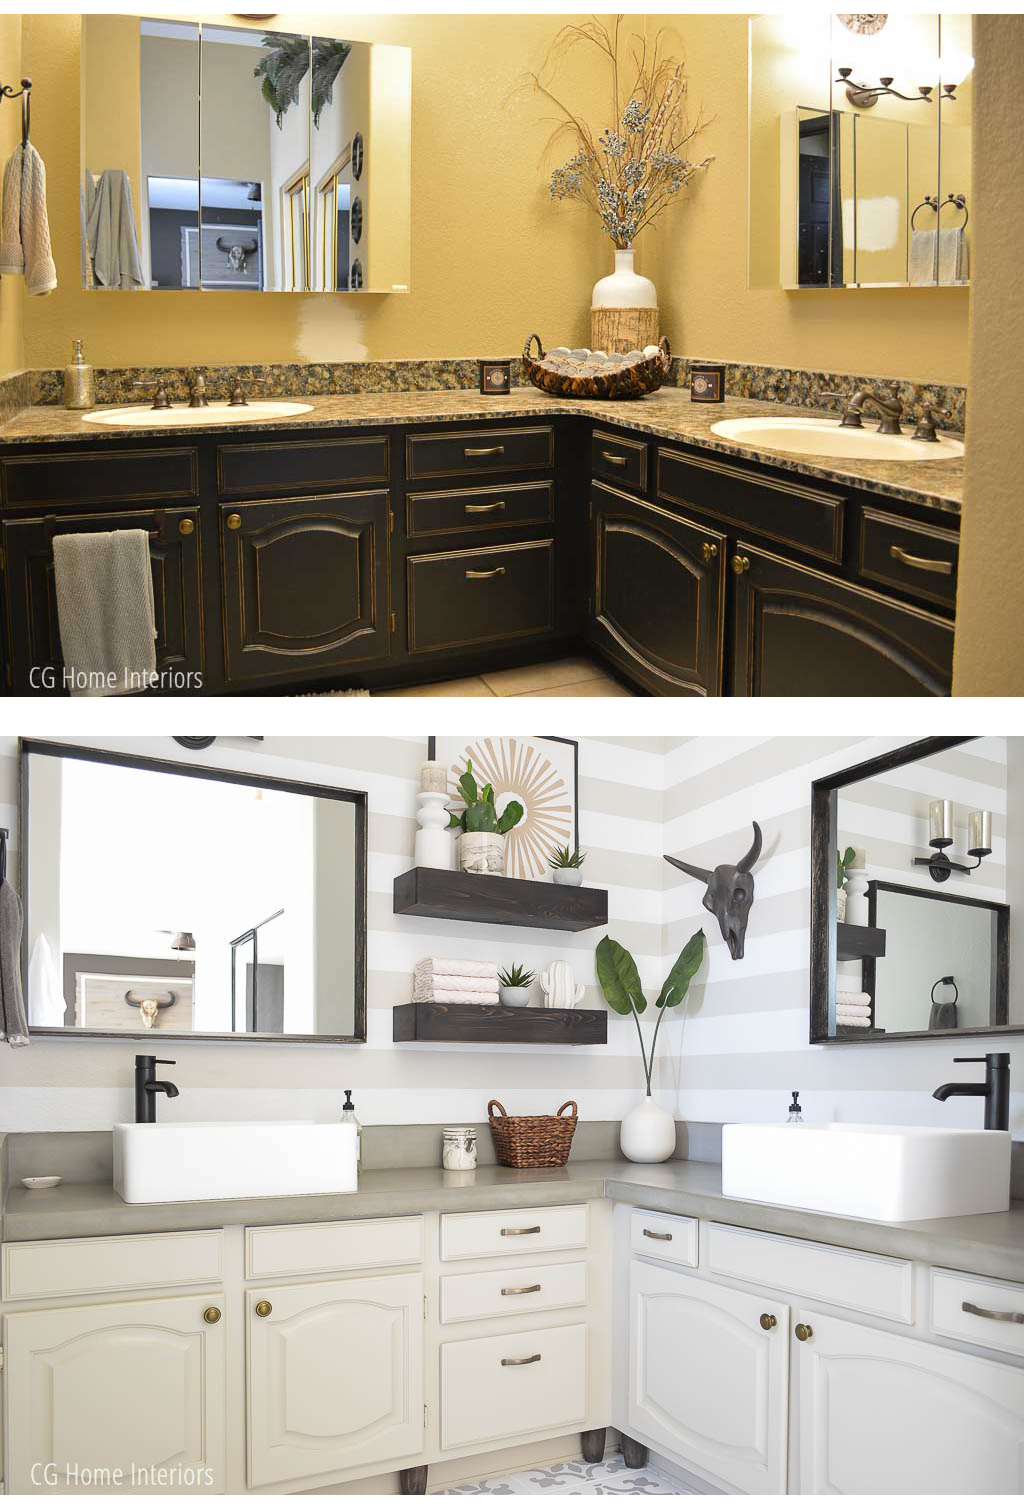 Builder Grade Bathroom Vanity Makeover Before and After